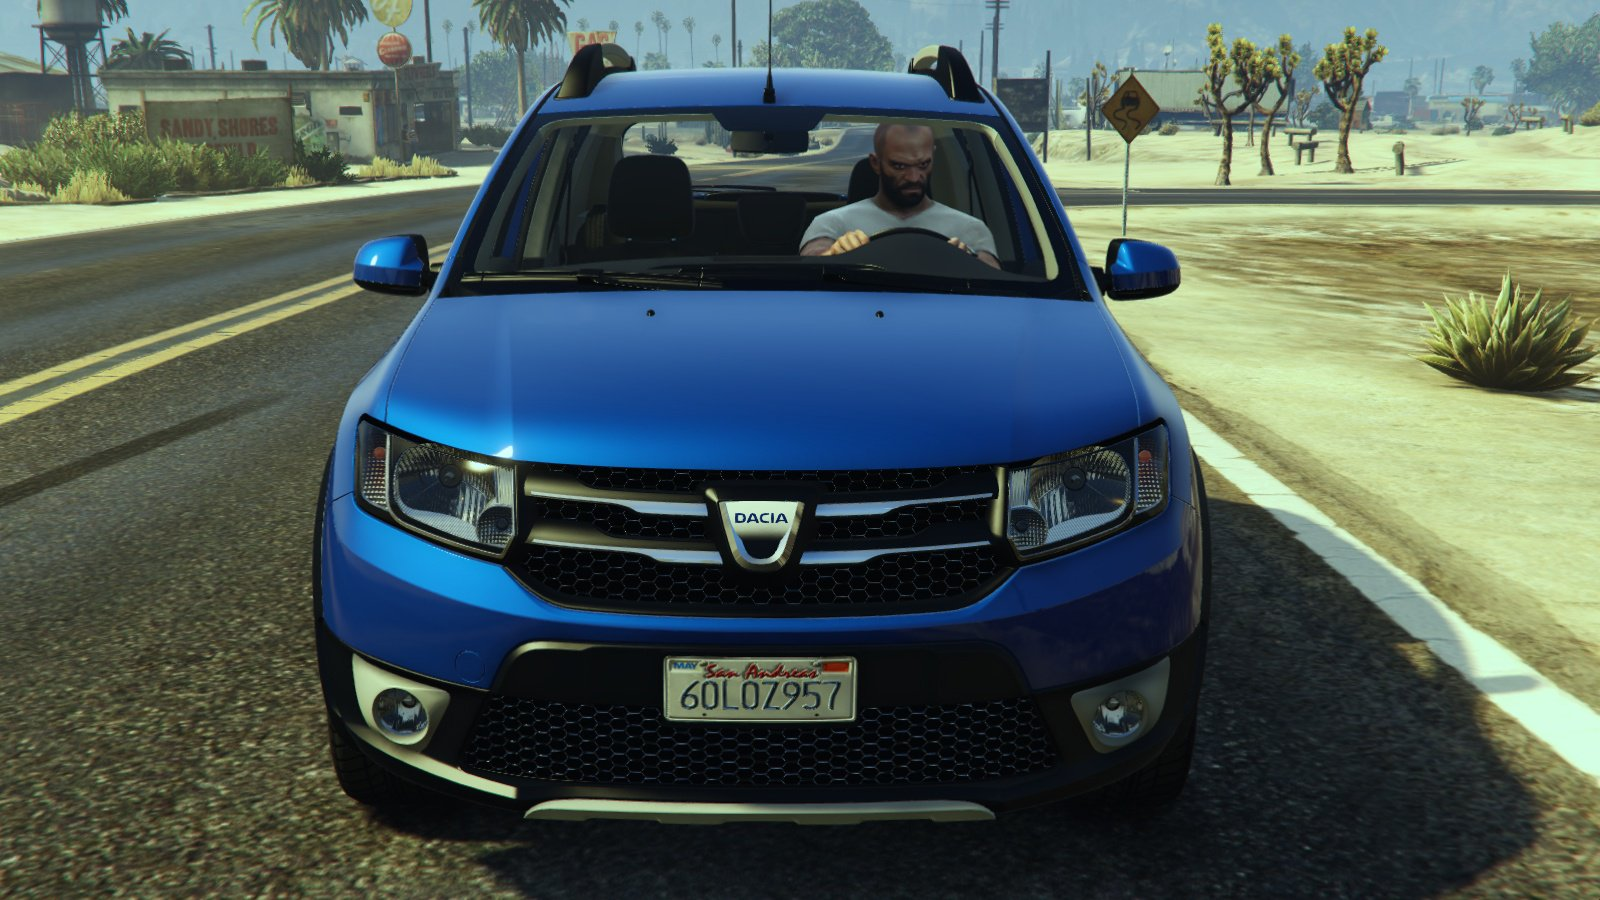 dacia sandero stepway 2014 vehicules pour gta v sur gta. Black Bedroom Furniture Sets. Home Design Ideas